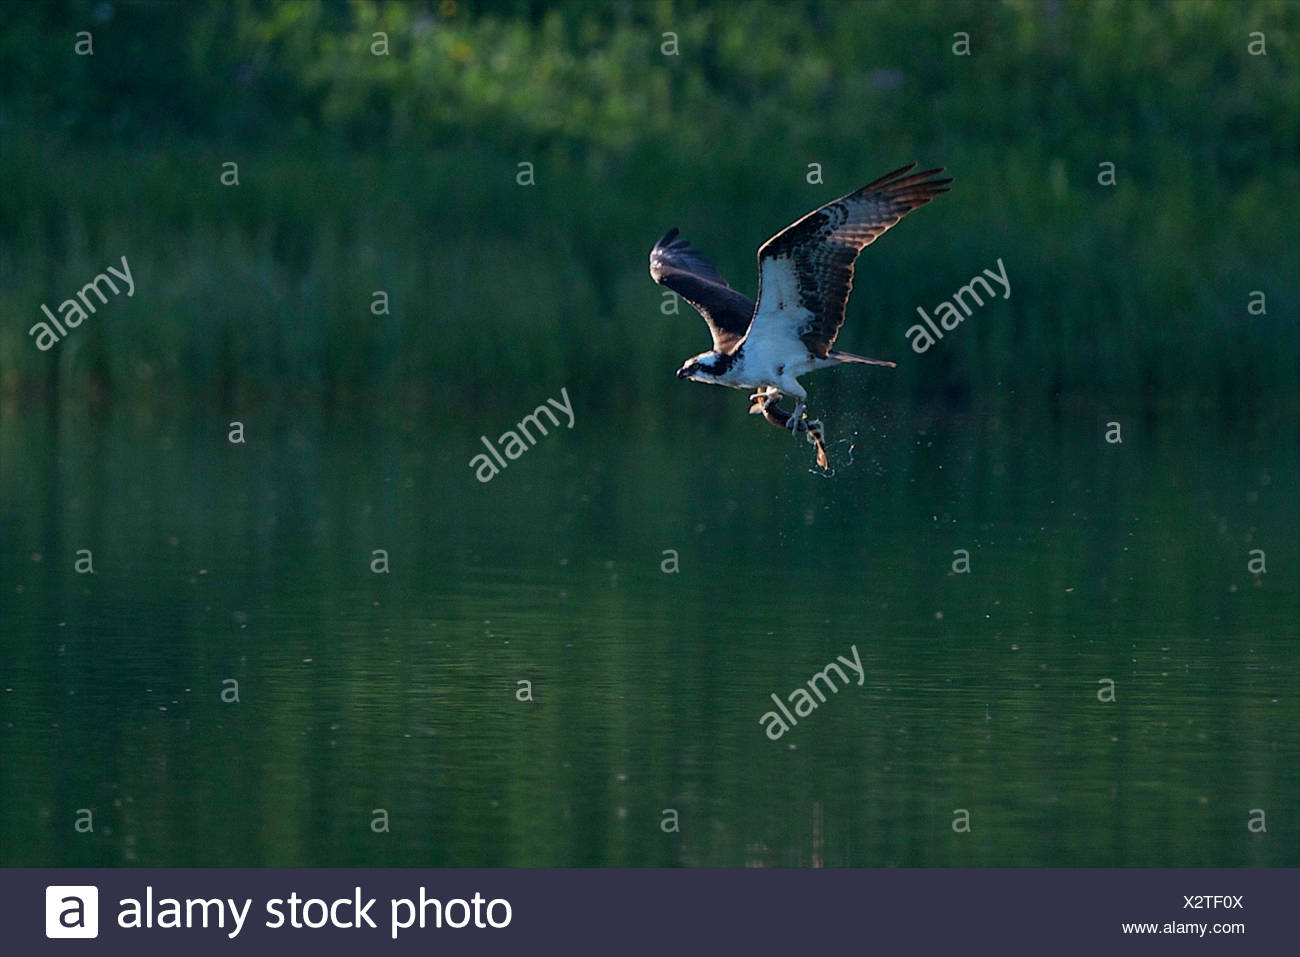 An osprey flying over the water with a fish in its talons. - Stock Image